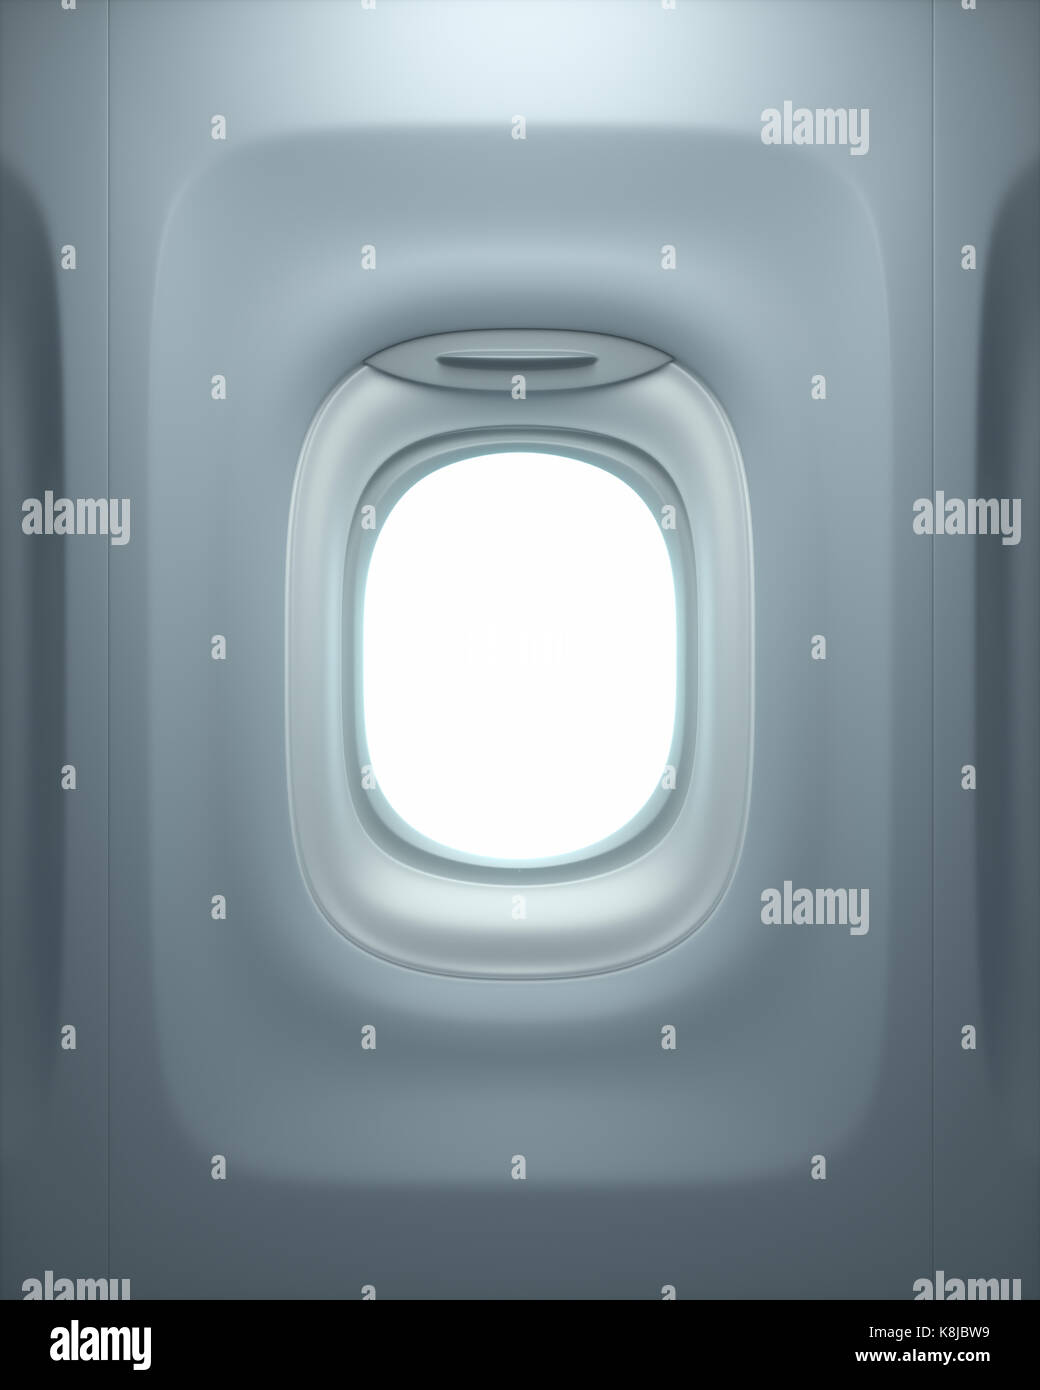 View from inside the airplane, through the open window. Clipping path included. - Stock Image